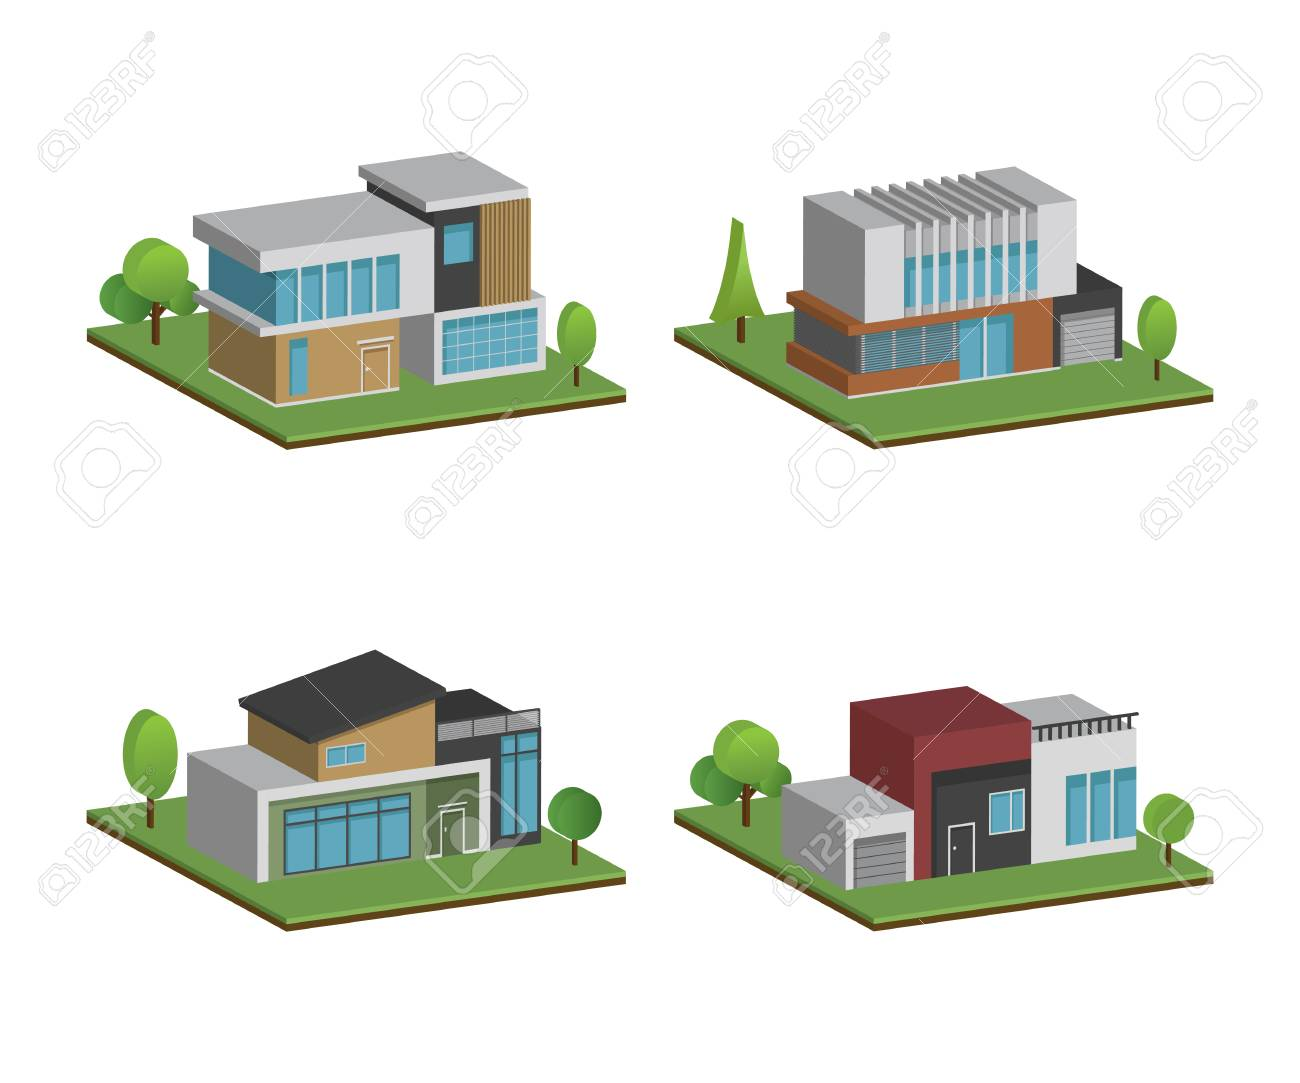 Set of isometric four houses and modern houses design 3d modern building and architecture with